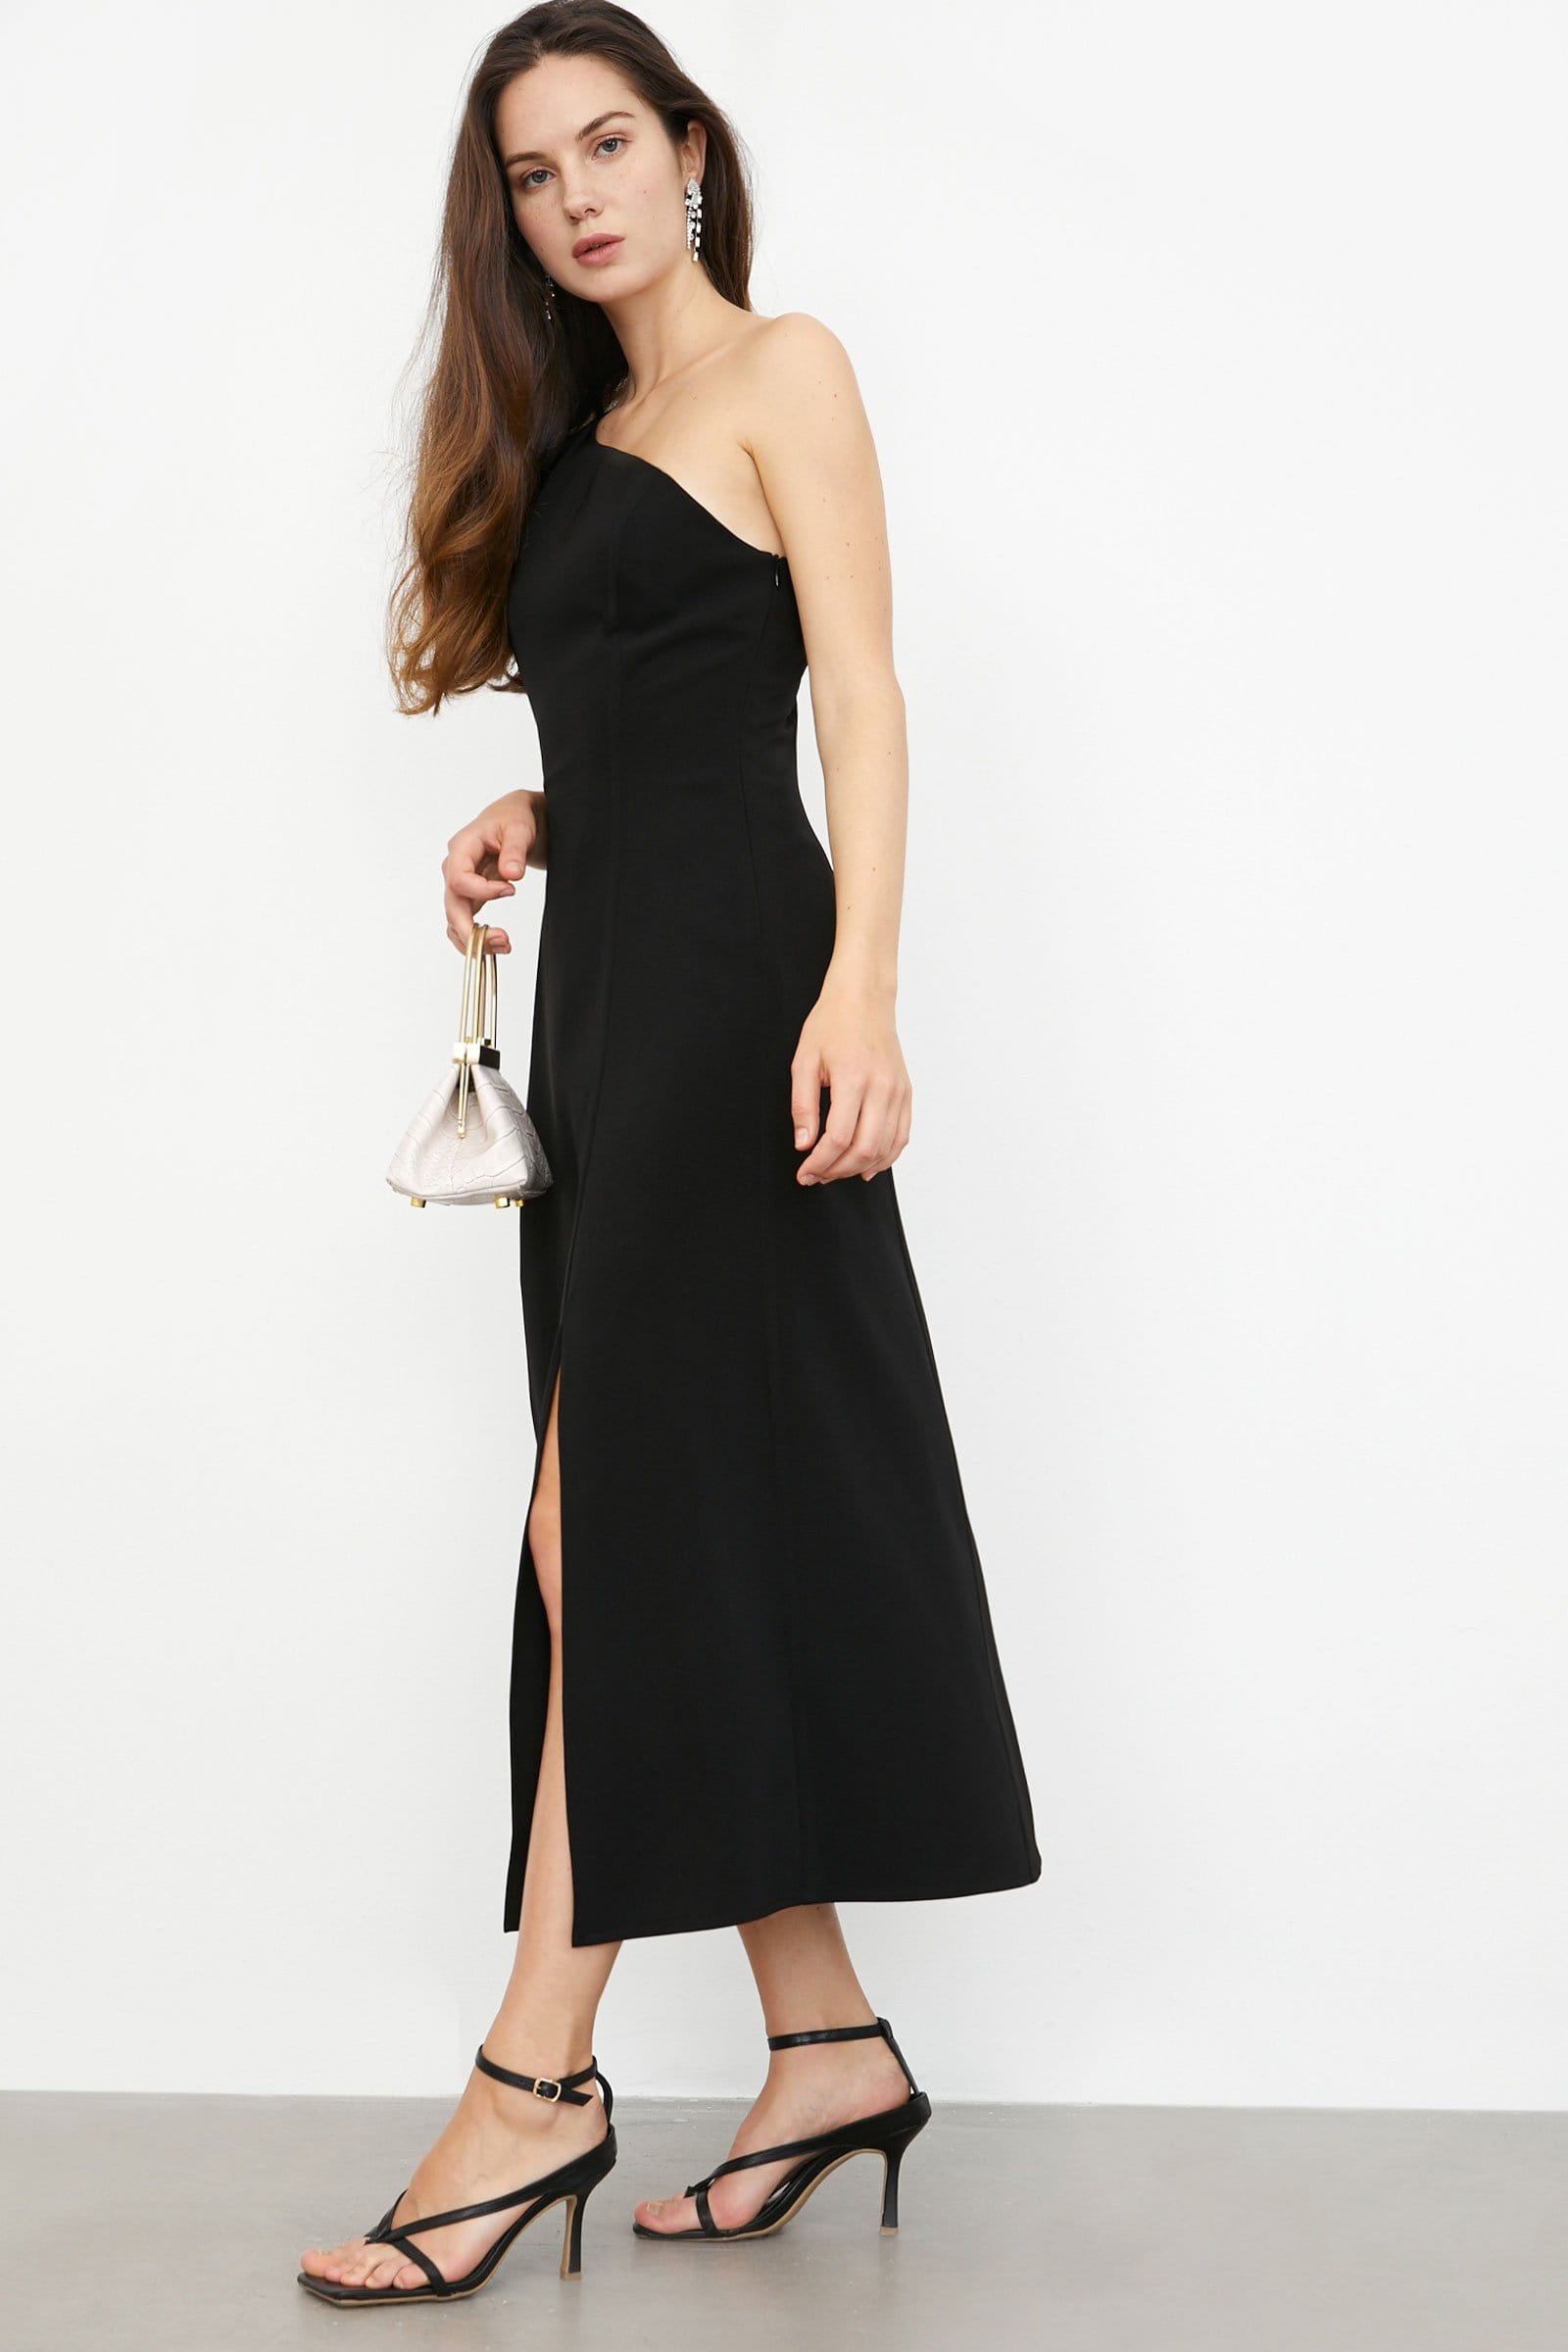 Irma Black One Shoulder Dress